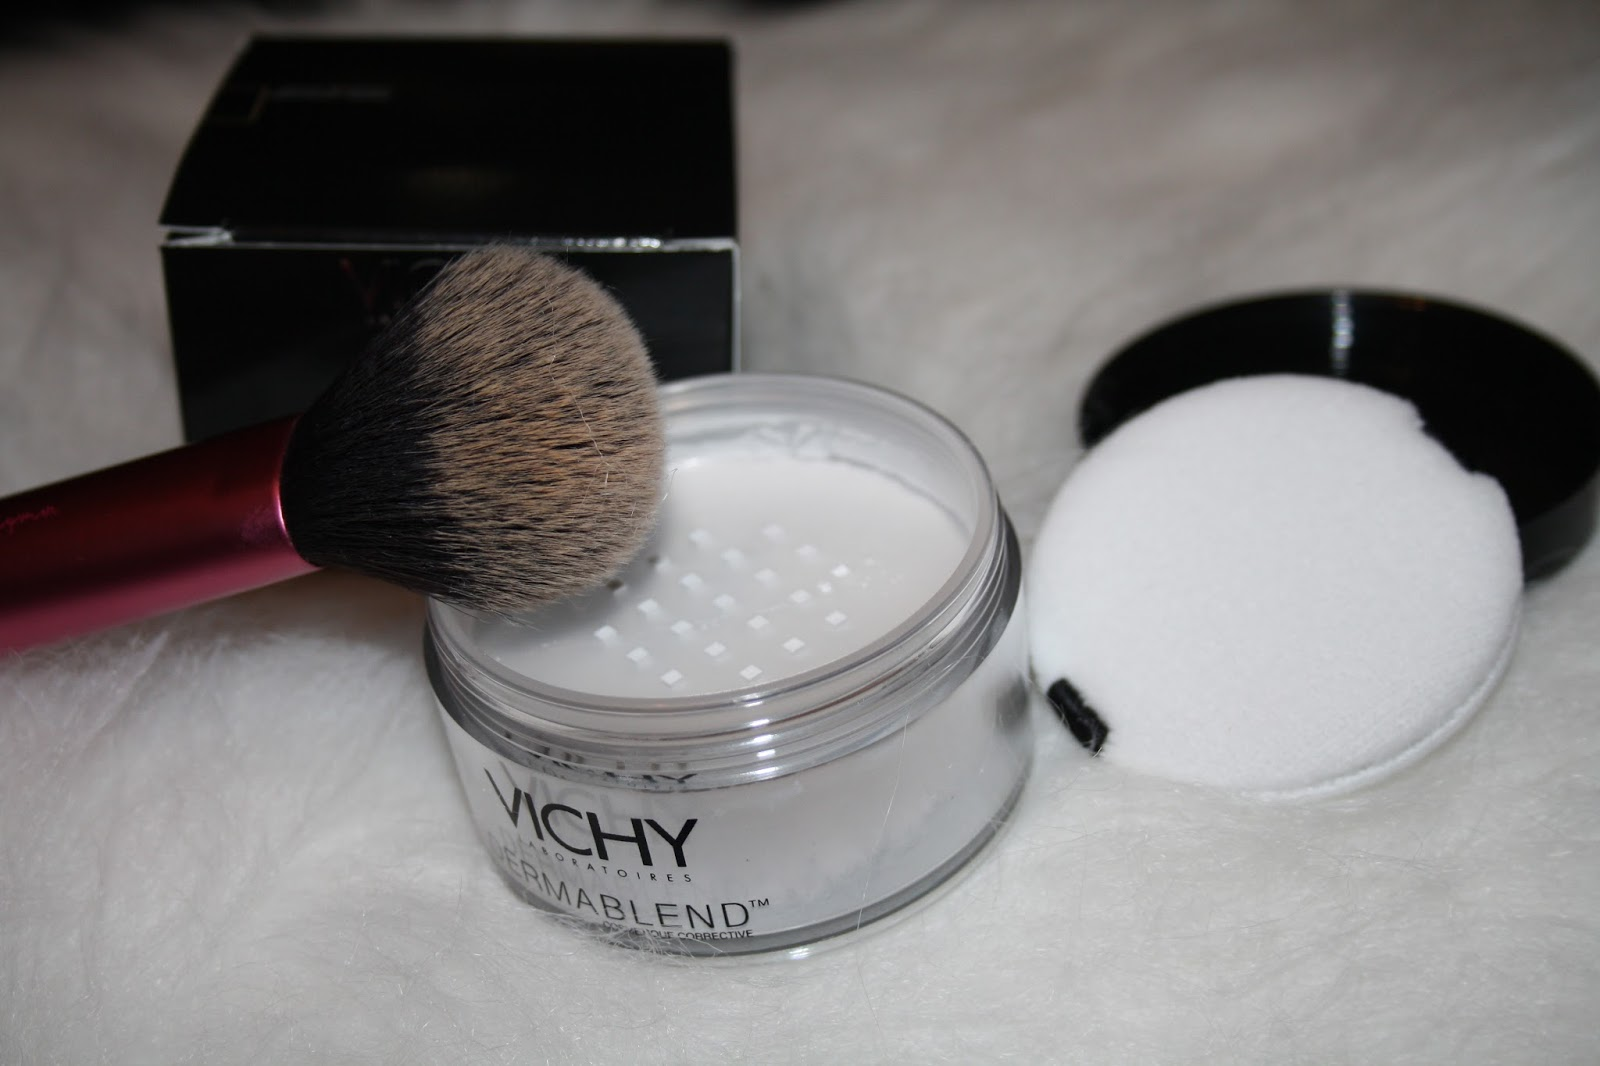 Vichy Dermablend translucent powder